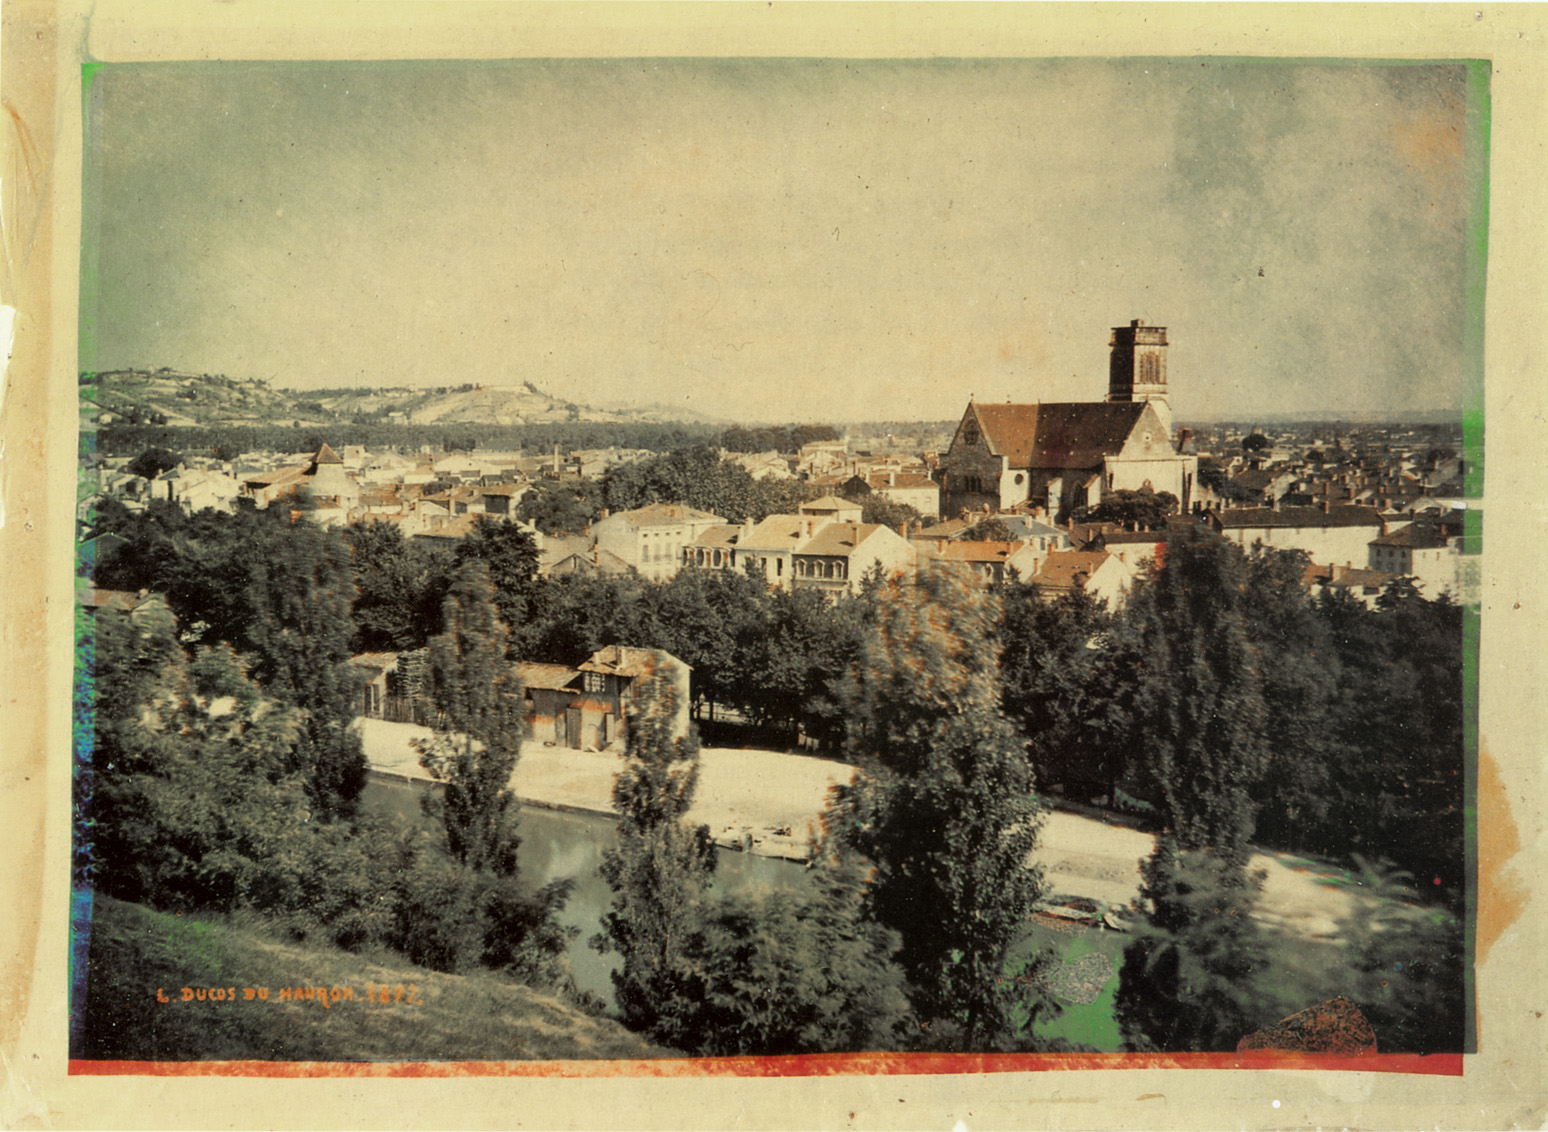 Pioneering colour photography from 1877 - by Louis Ducos du Hauron